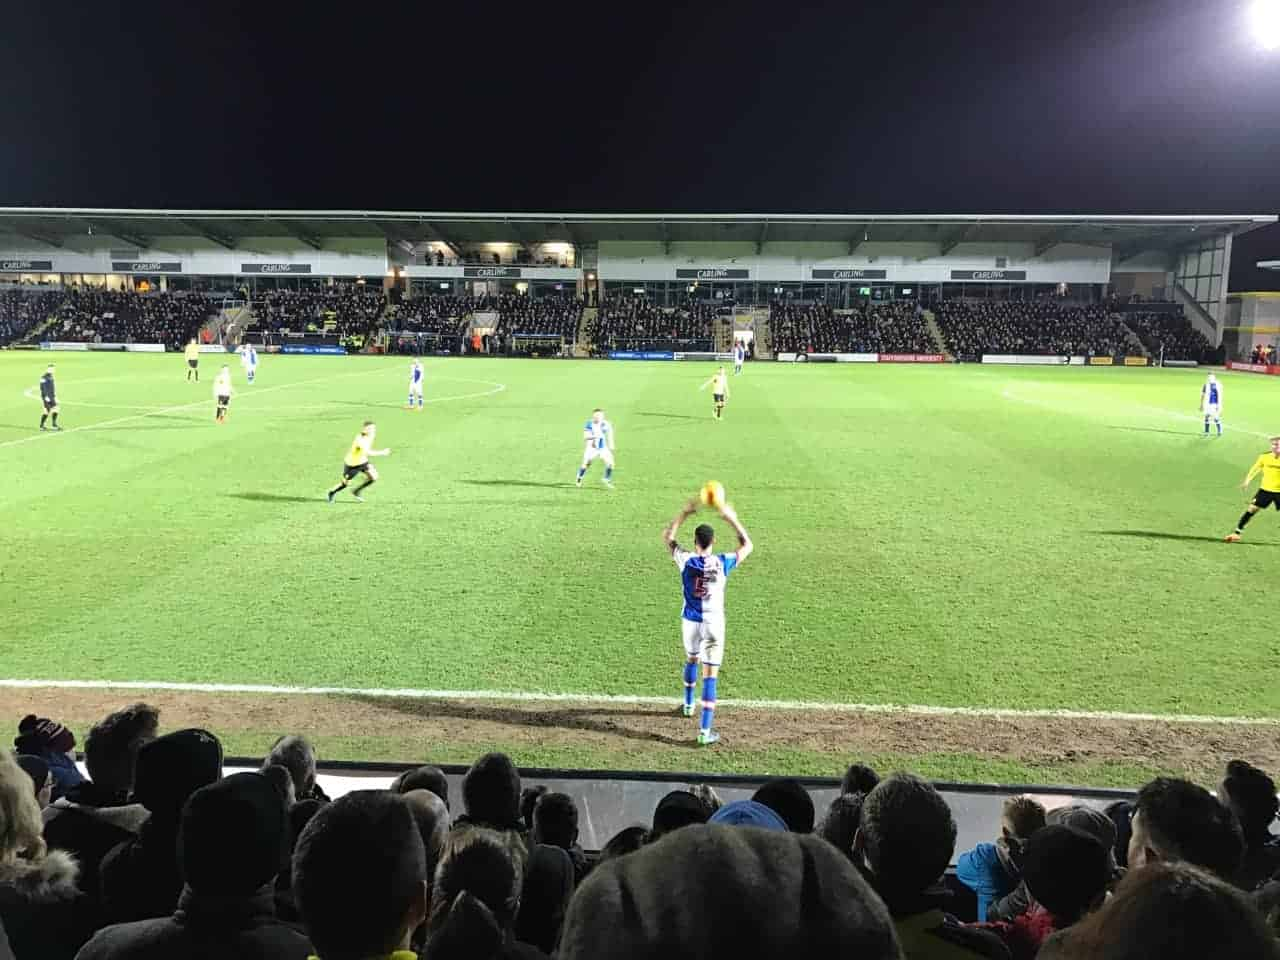 See a game at Burton Albion FC